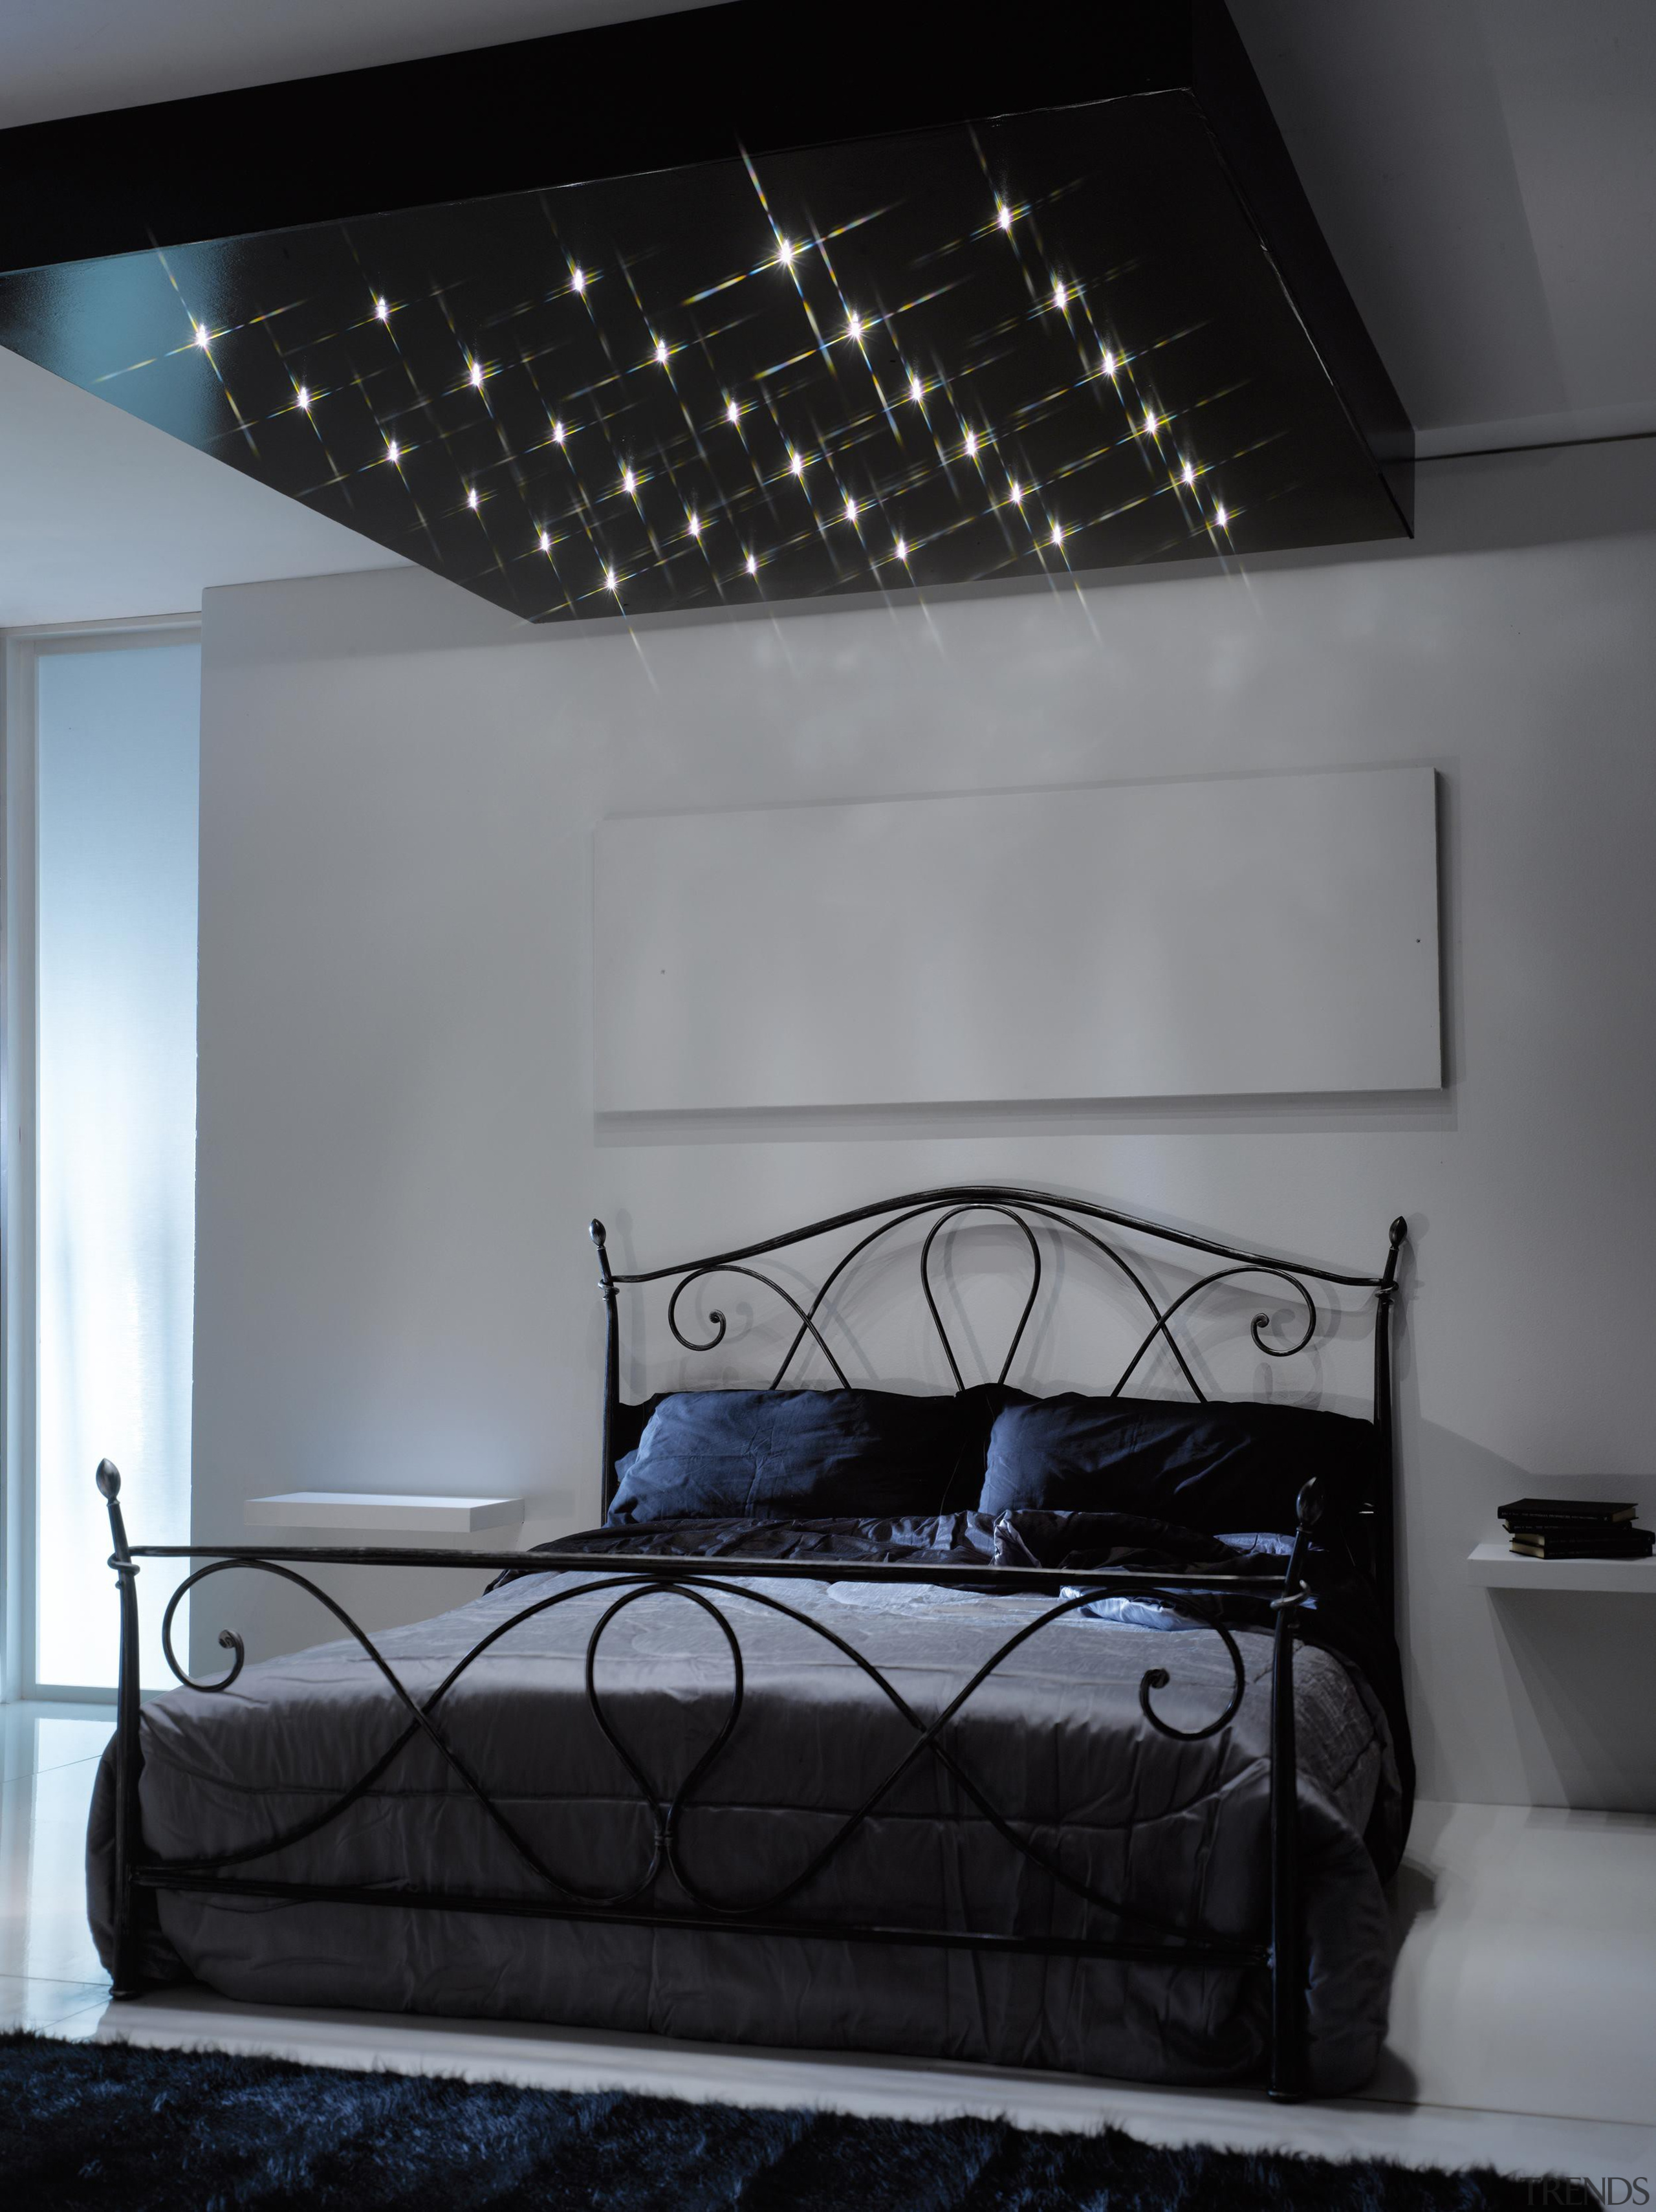 LED Lights - architecture | bed | bed architecture, bed, bed frame, bedroom, ceiling, furniture, interior design, room, wall, gray, black